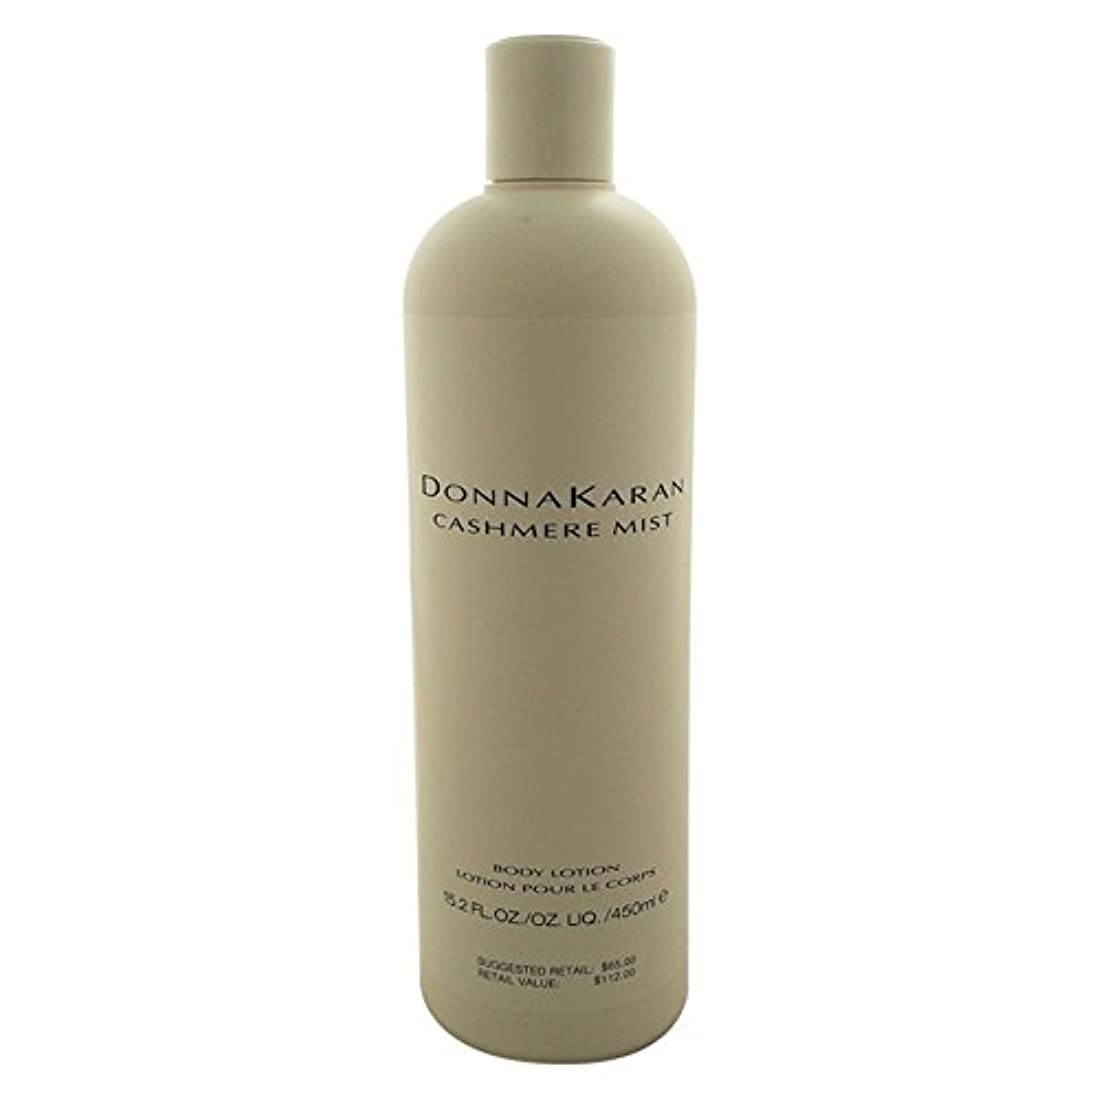 時間とともにスリラー葉っぱCASHMERE MIST by Donna Karan Body Lotion 15.2 oz